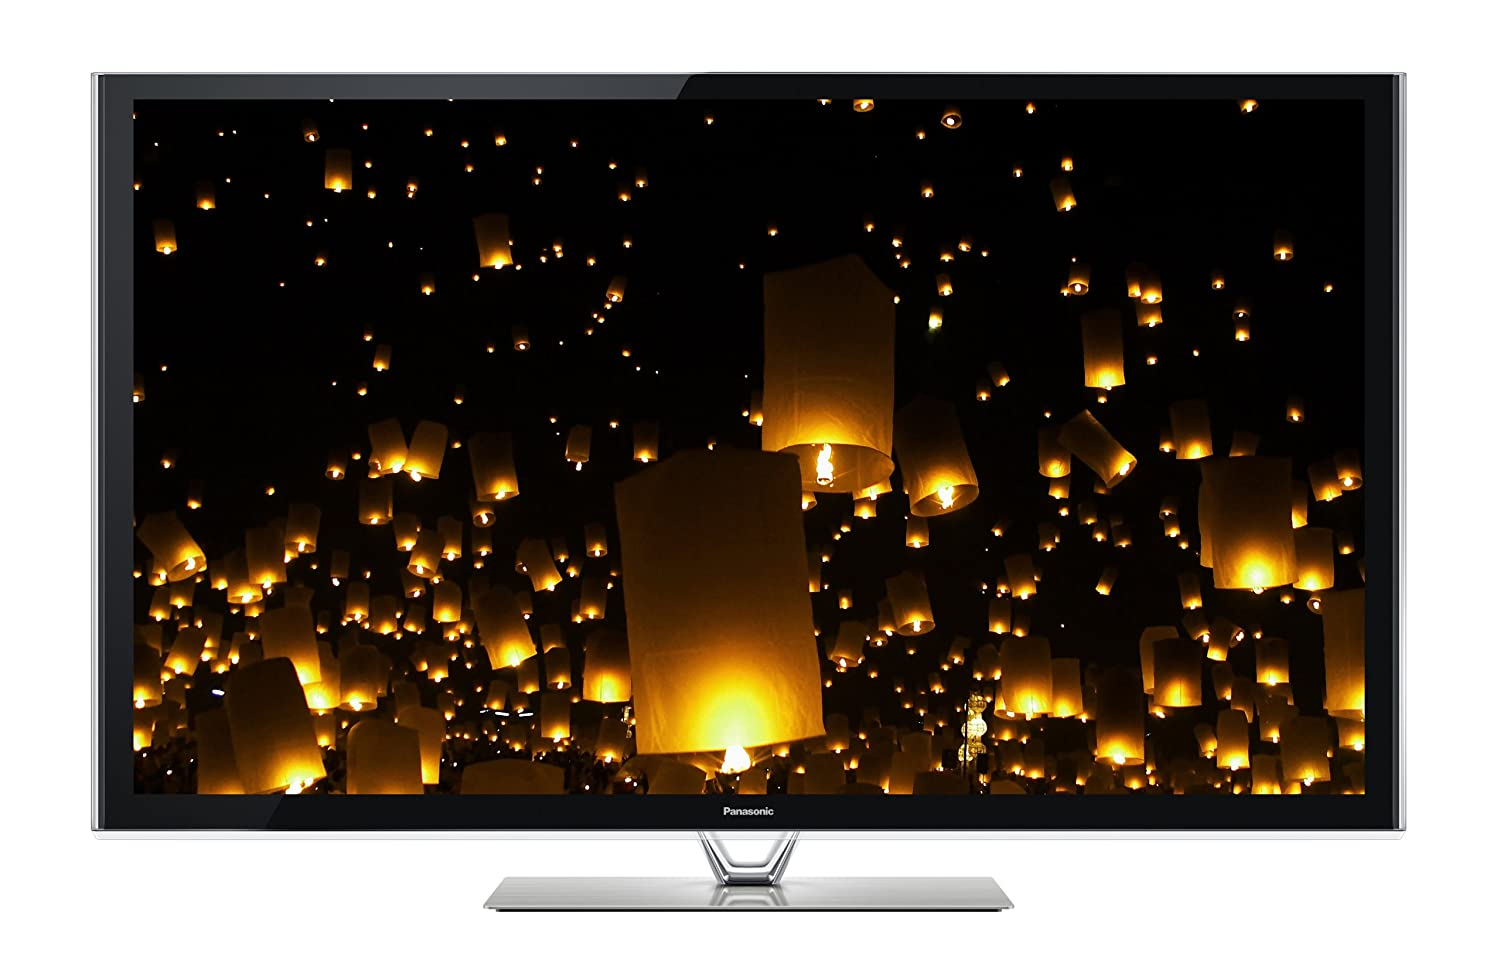 Panasonic TC-P60VT60 60-Inch 1080p 600Hz 3D Smart Plasma HDTV (Includes 2 Pairs of 3D Active Glasses and Built-in Camera) $1,975.95